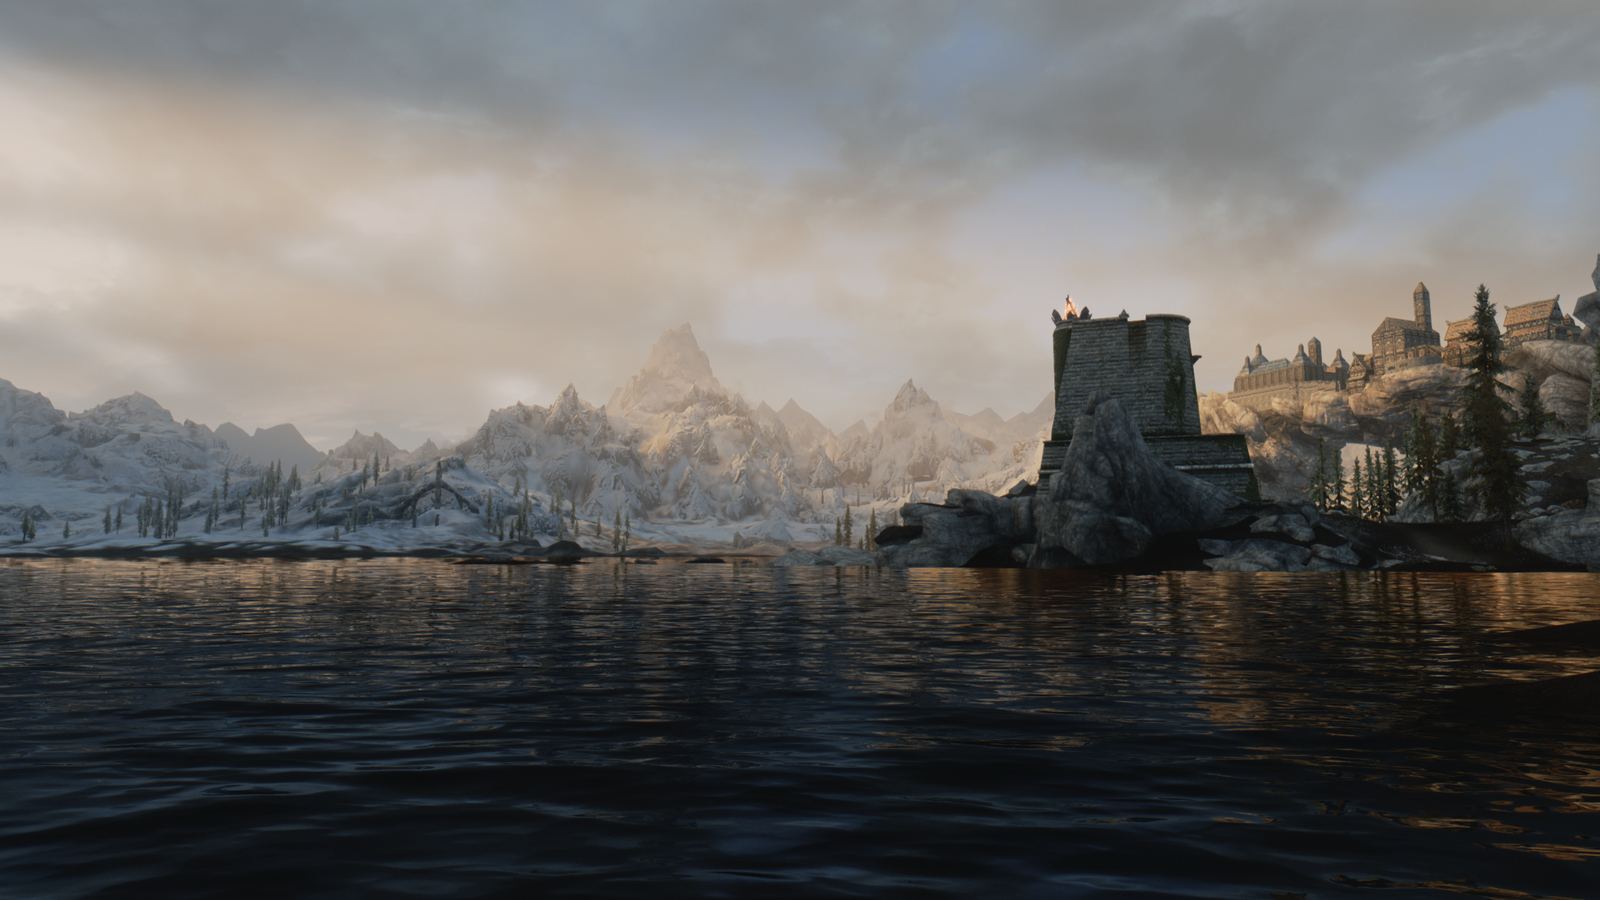 Looking for an ENB that renders realistic cloud shadows